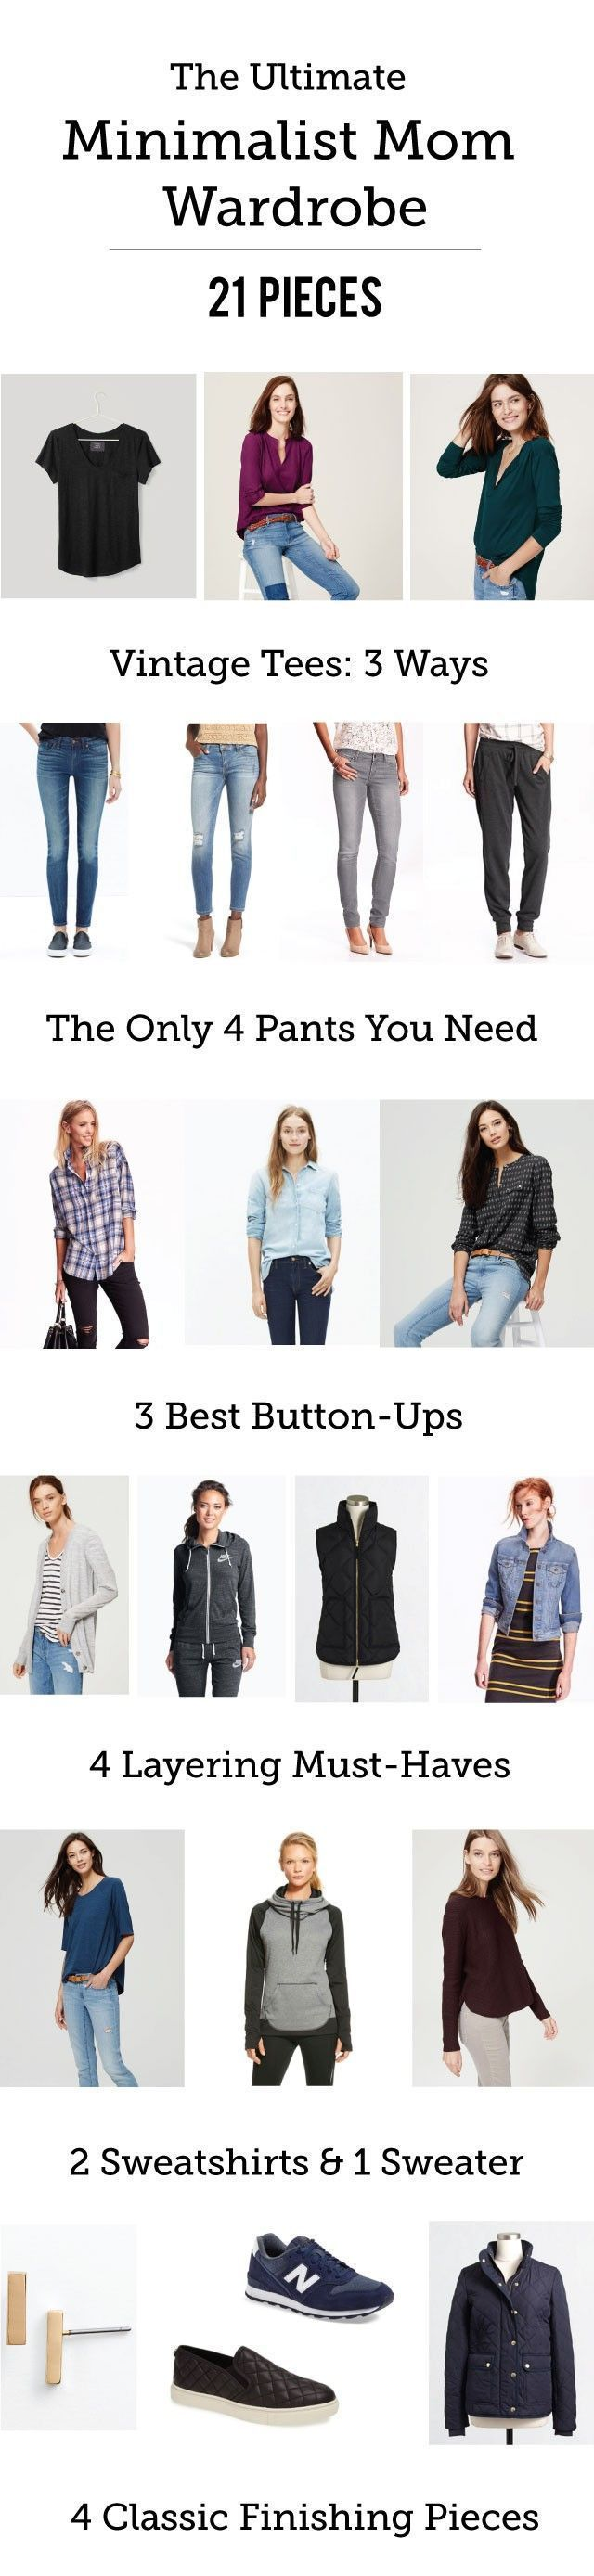 21 Piece Minimalist Mom Wardrobe: The ultimate capsule wardrobe for minimalist moms with a classic, laid back style... Almost this whole list is on sale right now- time to do some shopping!